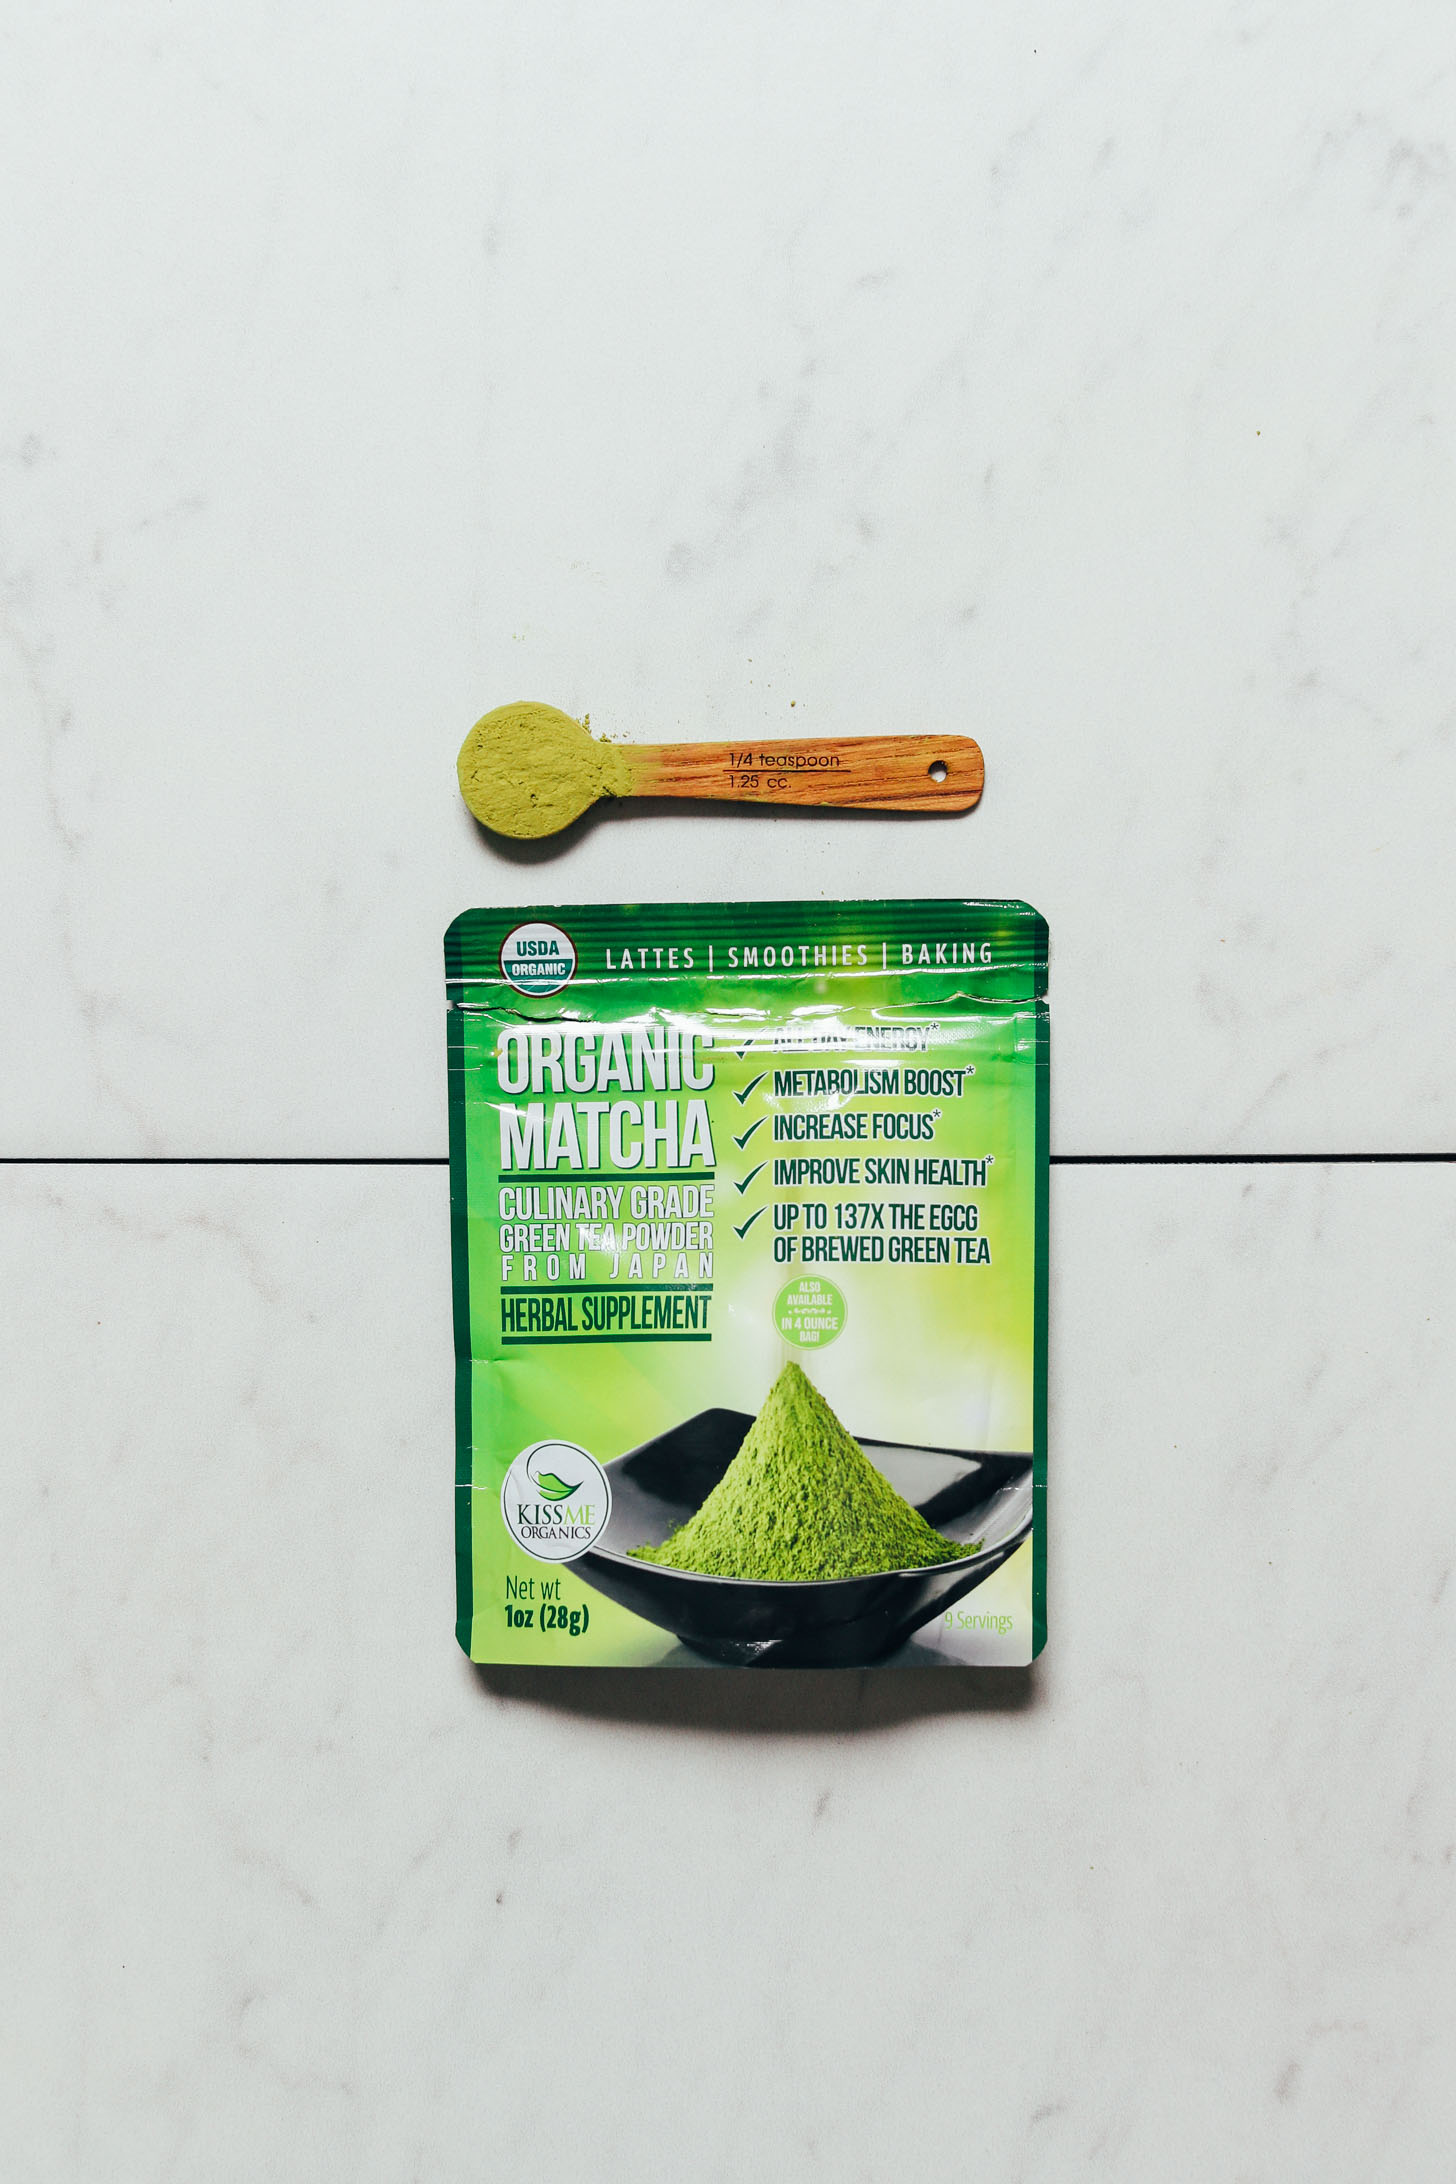 Packet and spoonful of Kiss Me Organics Culinary Matcha for our roundup of the best brands of matcha powder